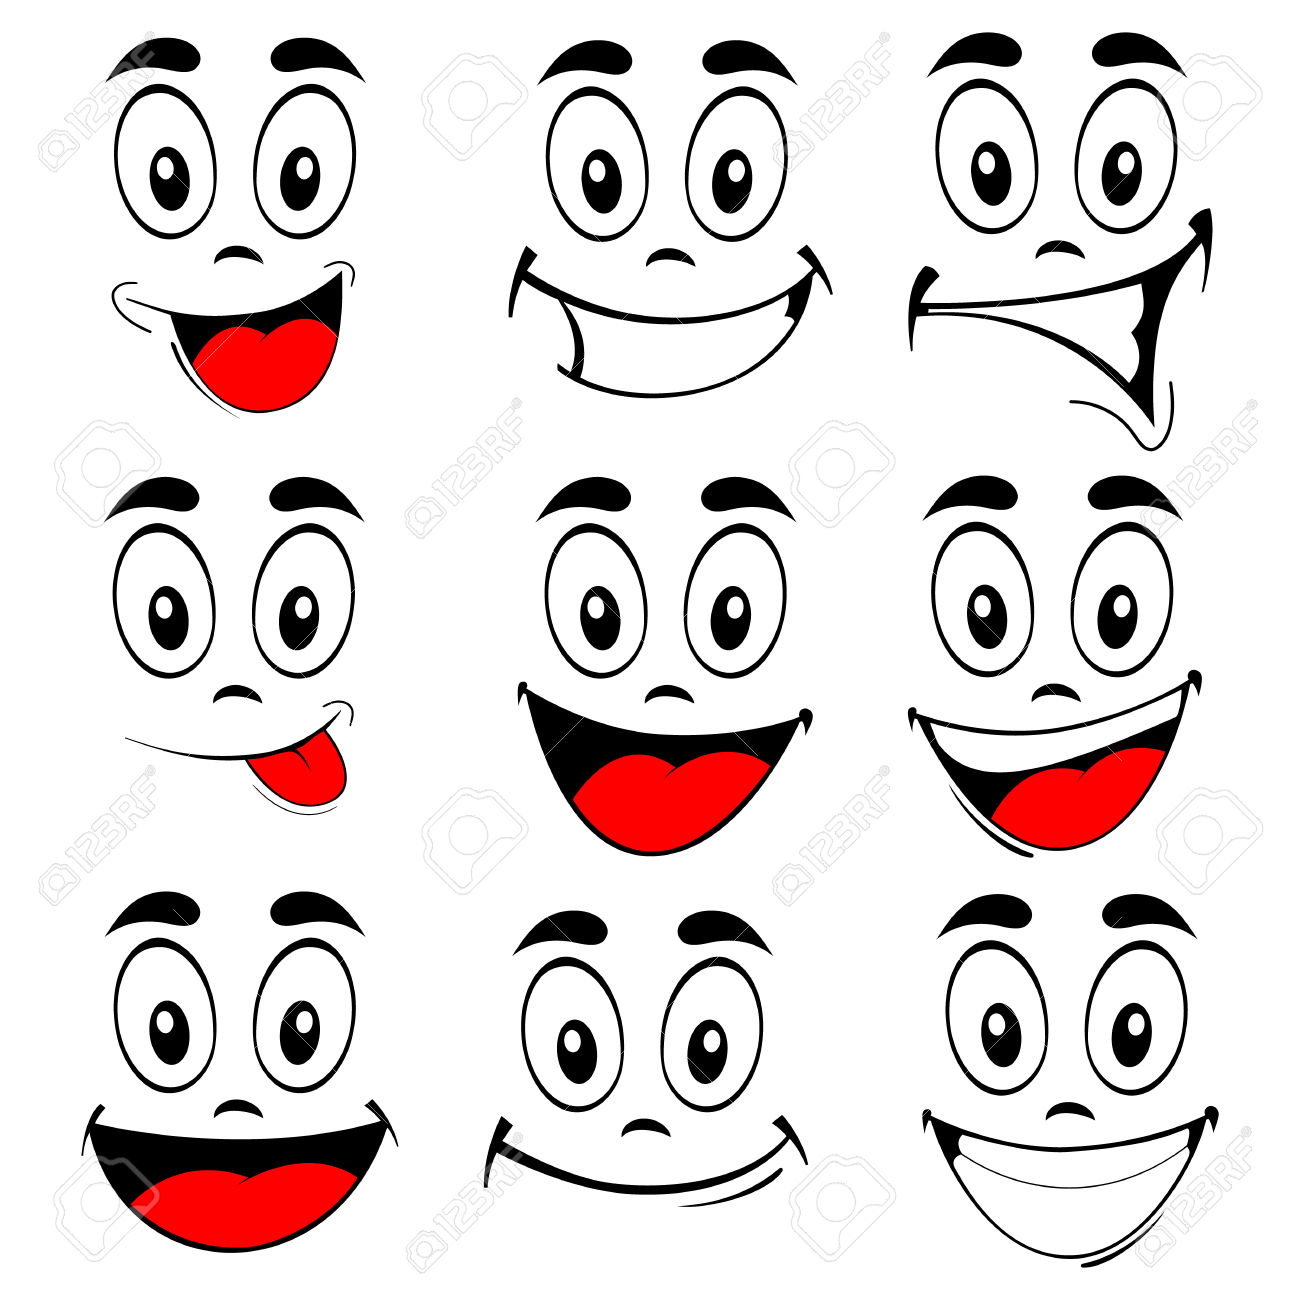 Bulb Diagram With Labels also Japanese Body Parts moreover Eyes Tongue Clipart together with Animal Parts Worksheets Kindergarten 3 further Face body parts clipart. on 5 parts of the eye